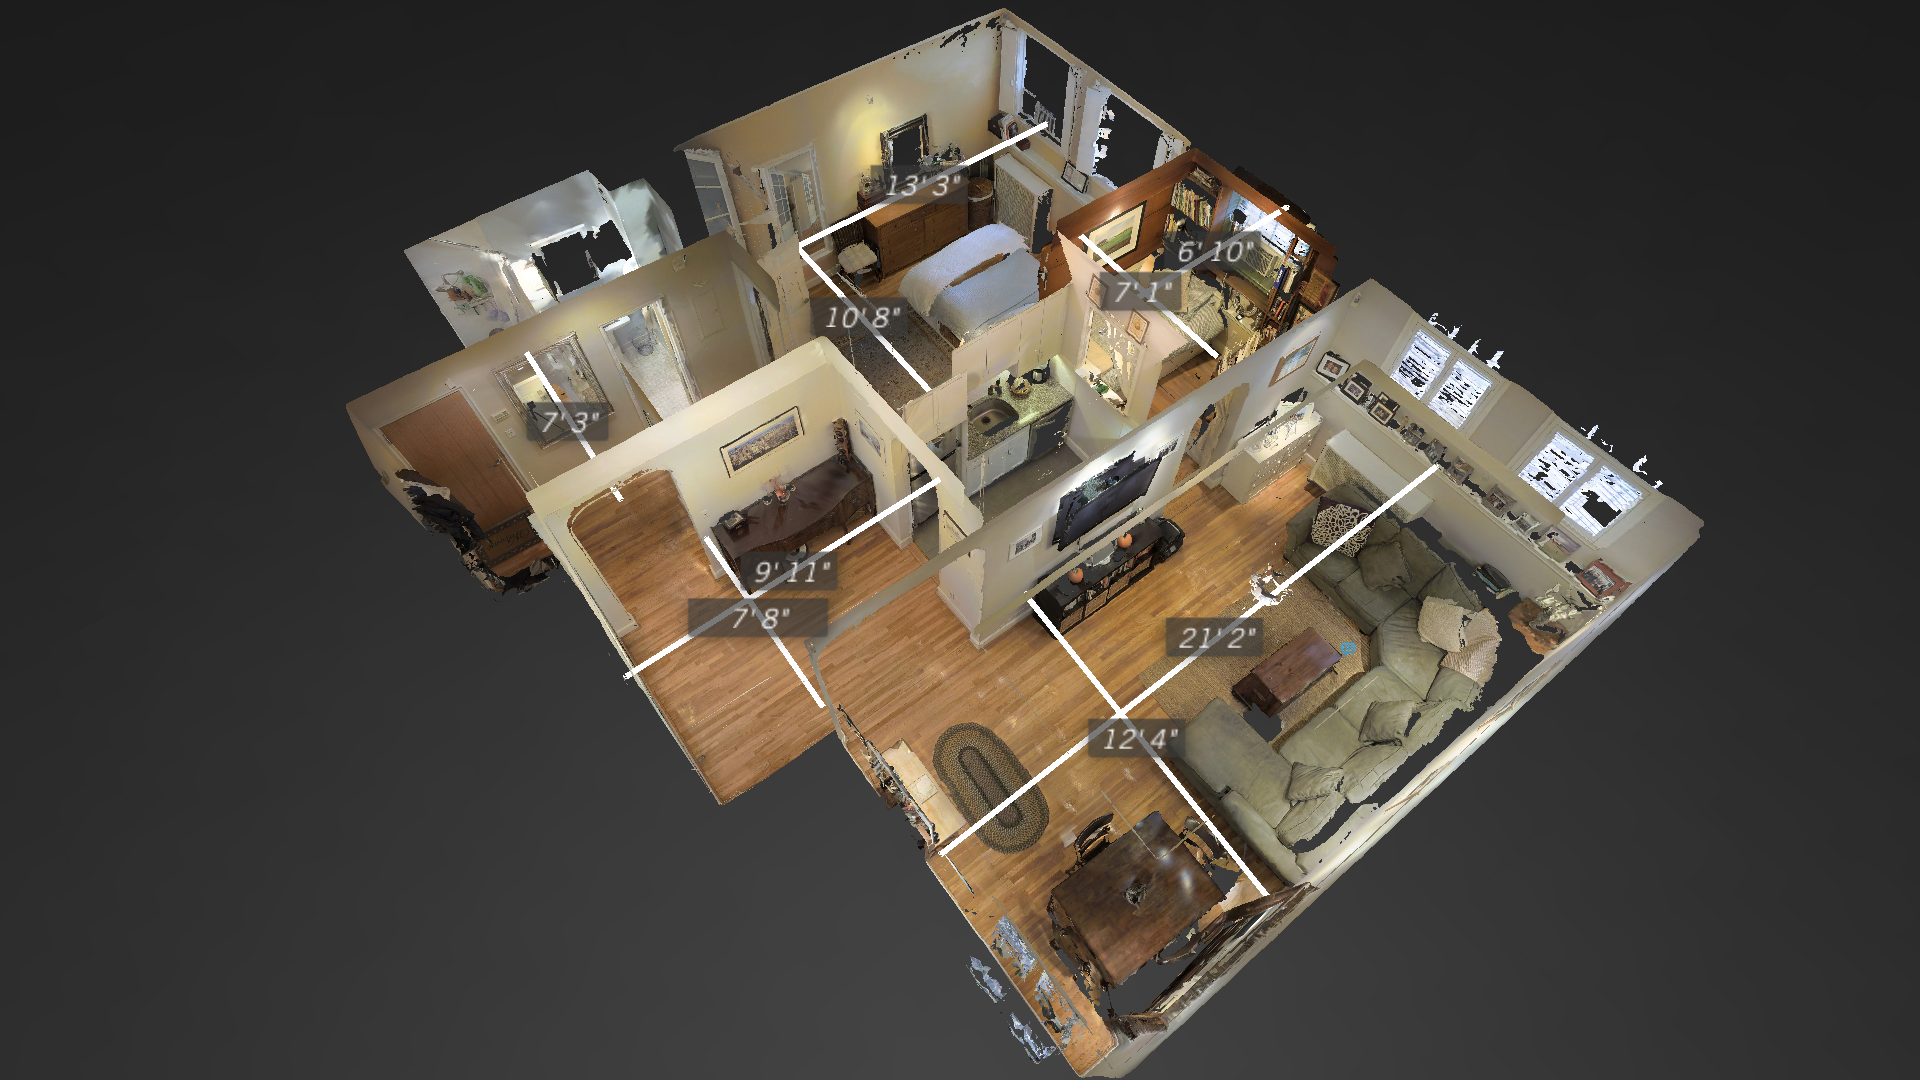 Buy rent sell boston boston real estate home and for 3d virtual tour house plans